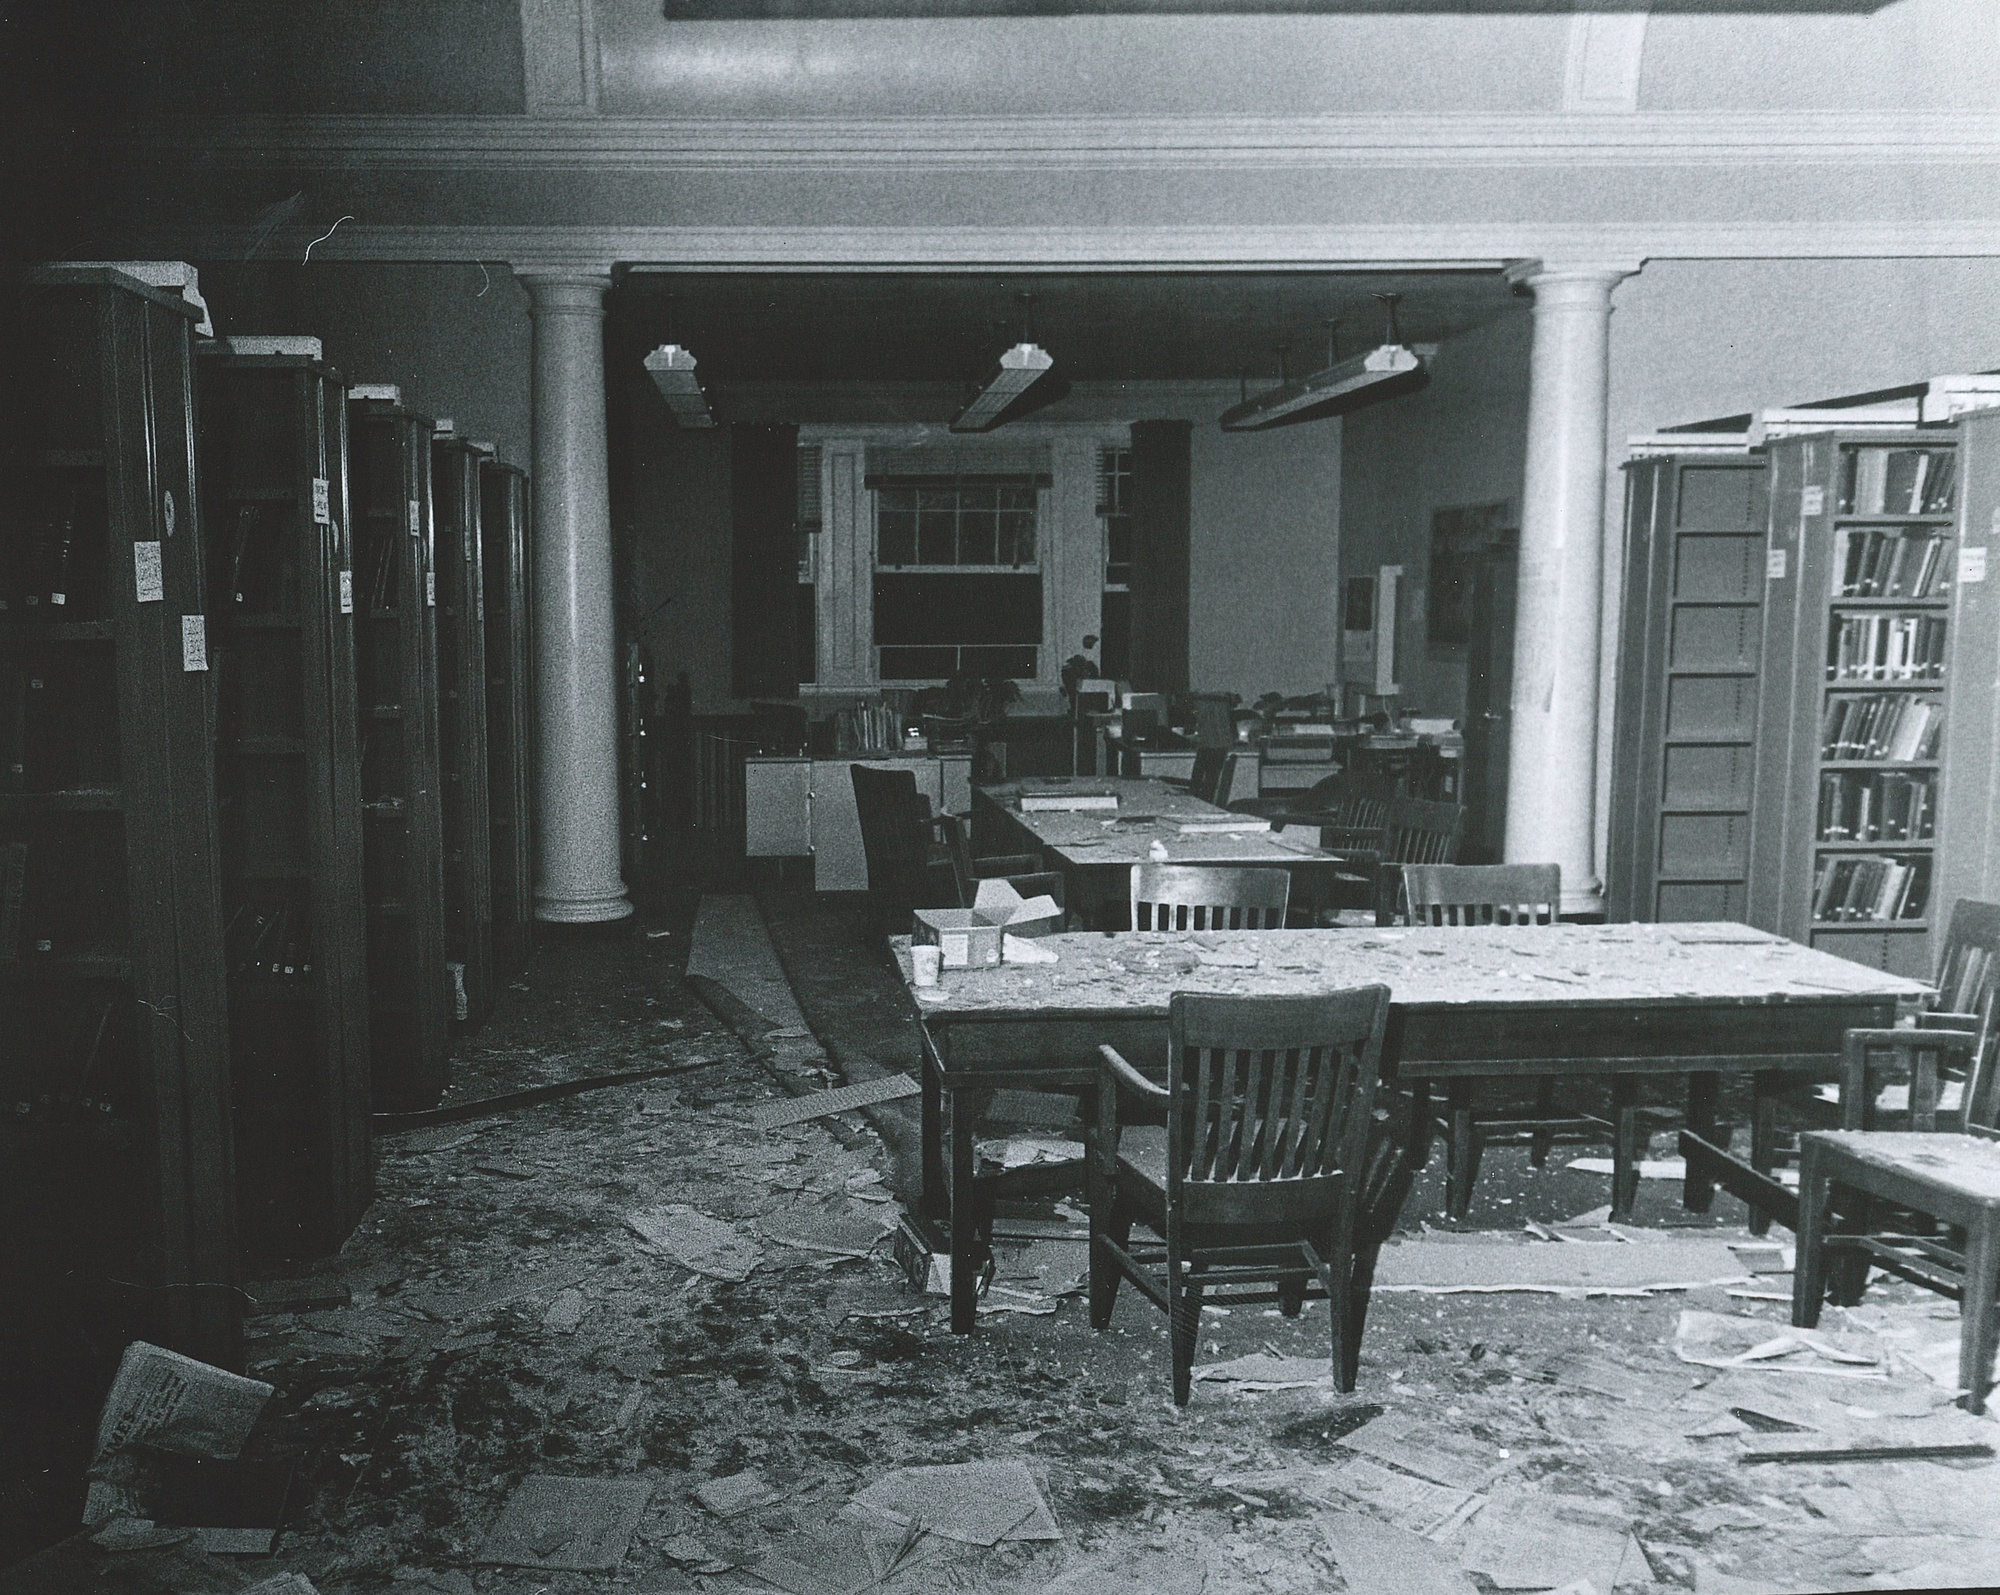 On October 14th, 1970, an explosion ripped through the third floor of the Harvard Semitic Museum, just north of Harvard Yard